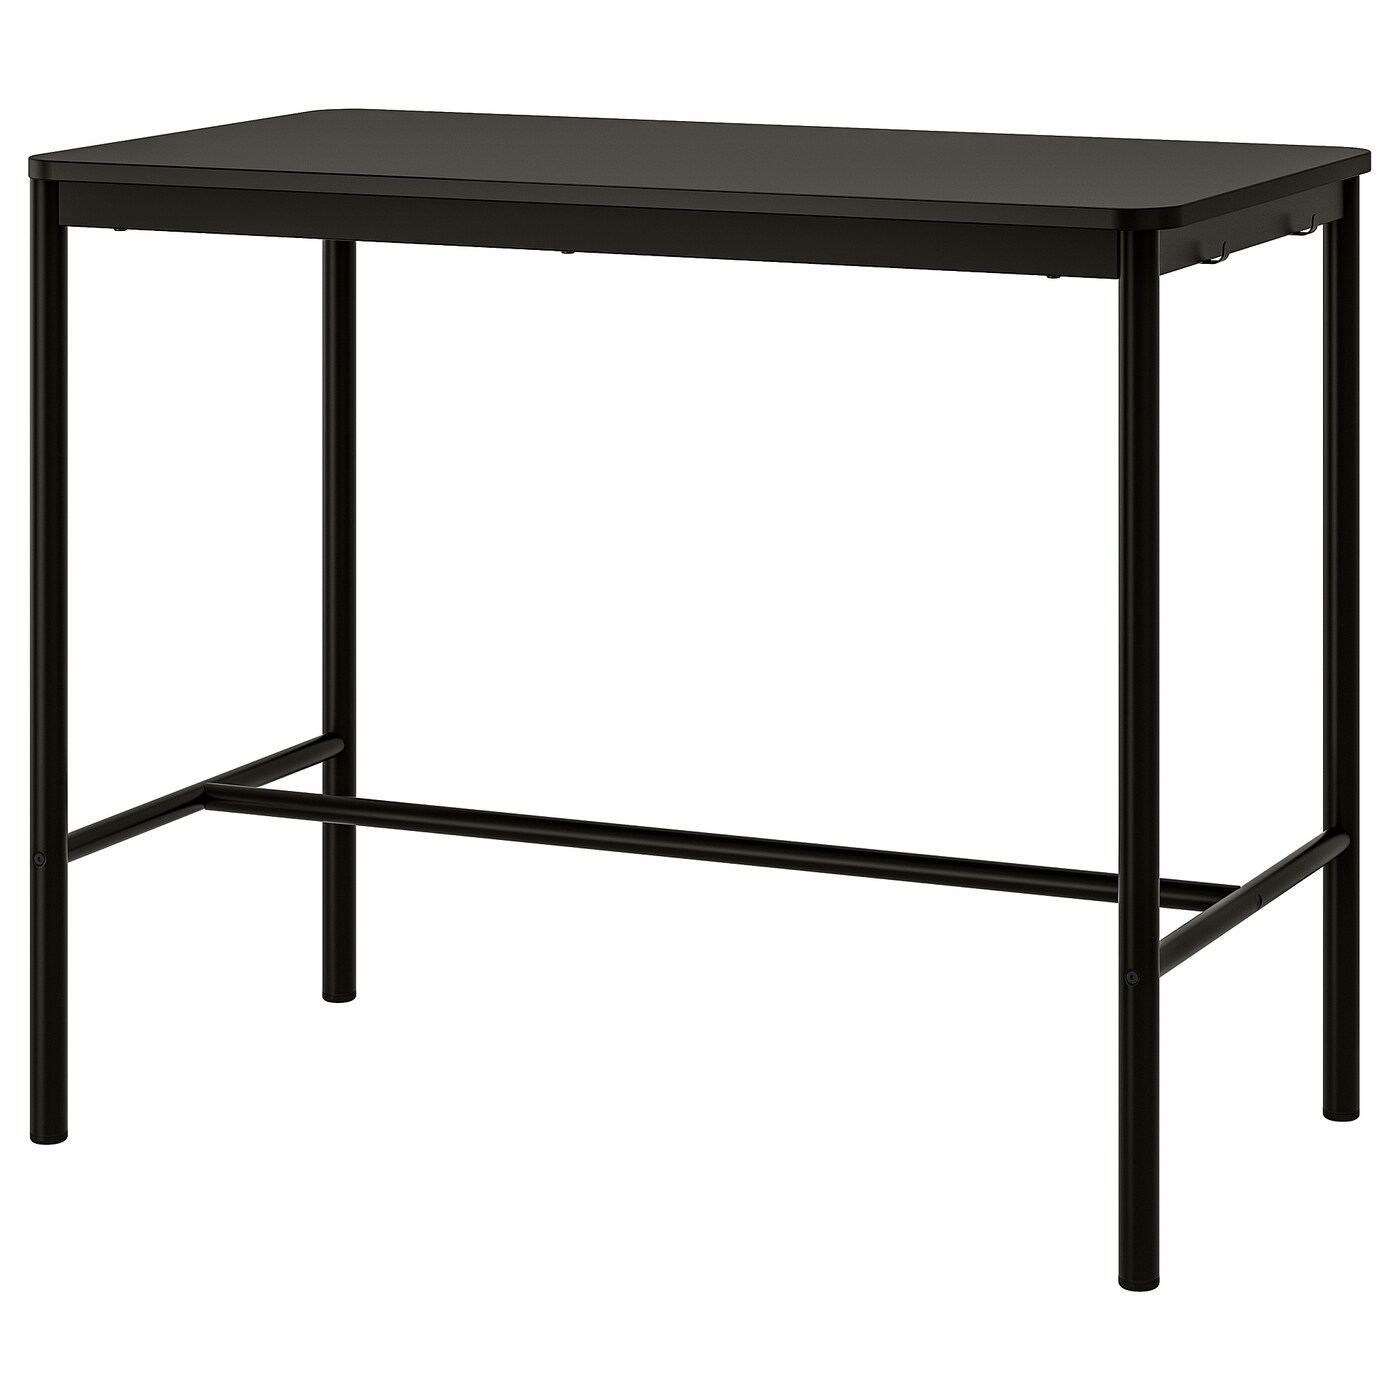 Tommaryd Table Anthracite 130x70 105 Cm Ikea